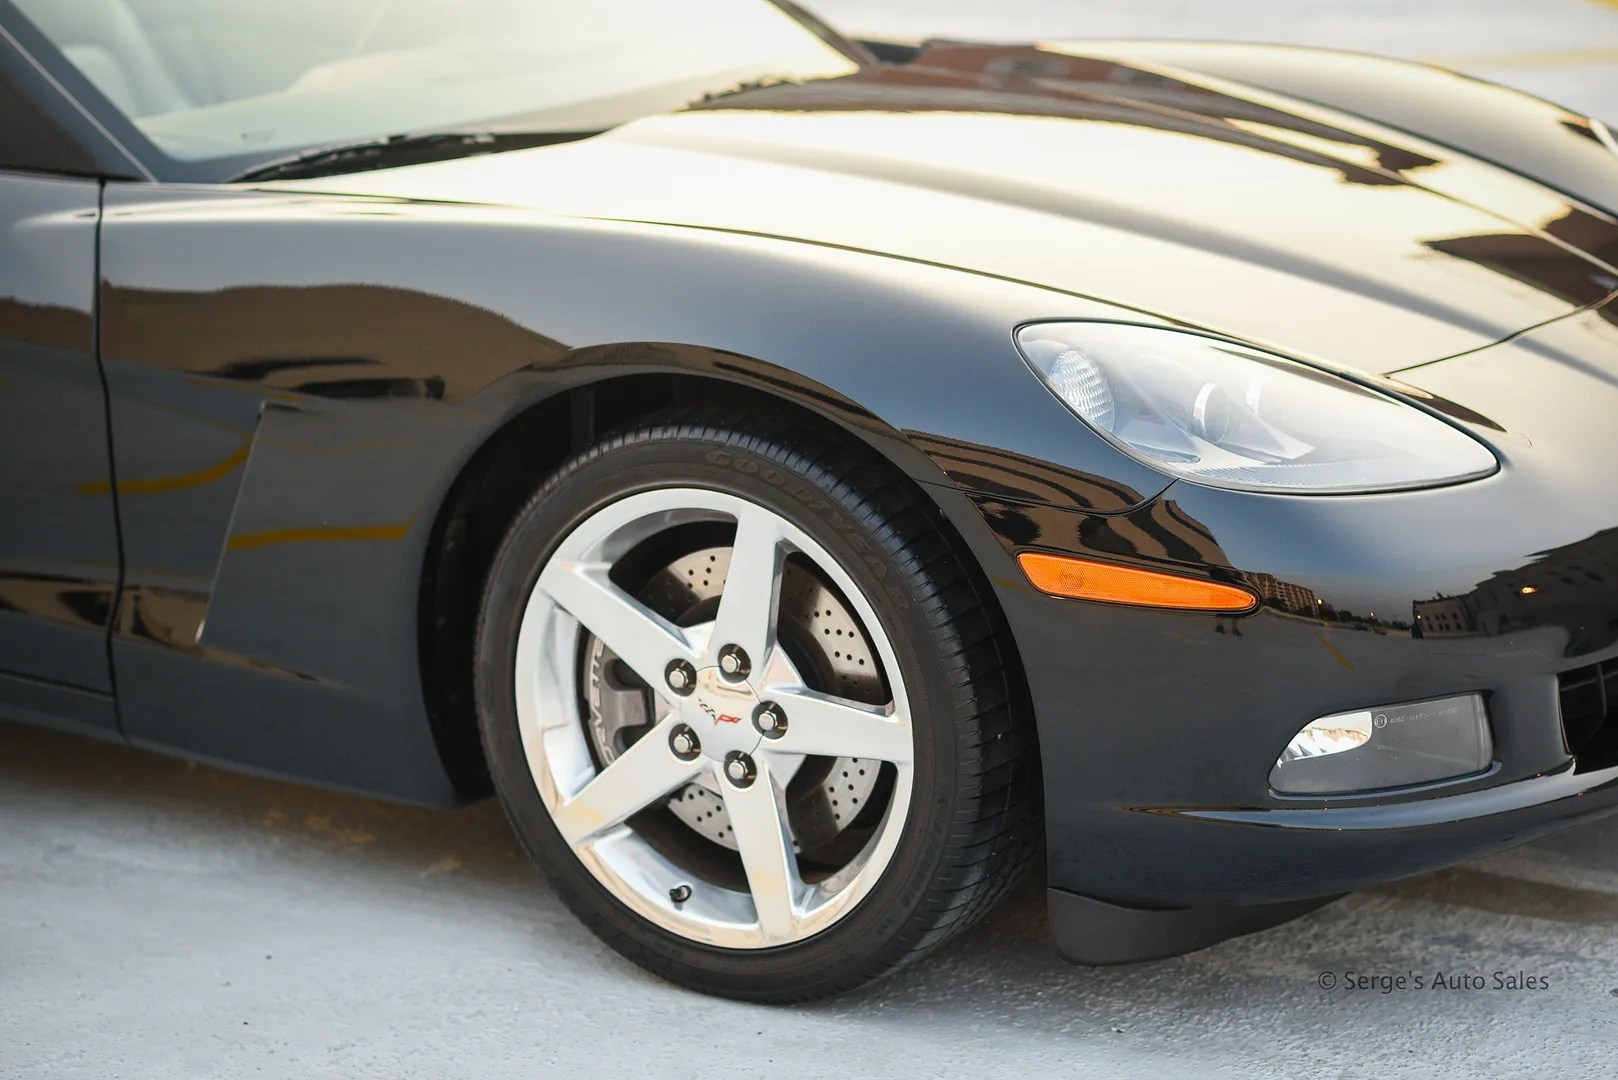 photo 2005-C6-Corvette-Convertible-For-Sale-Scranton-Serges-Auto-Sales-dealer--44_zpsza9bglga.jpg